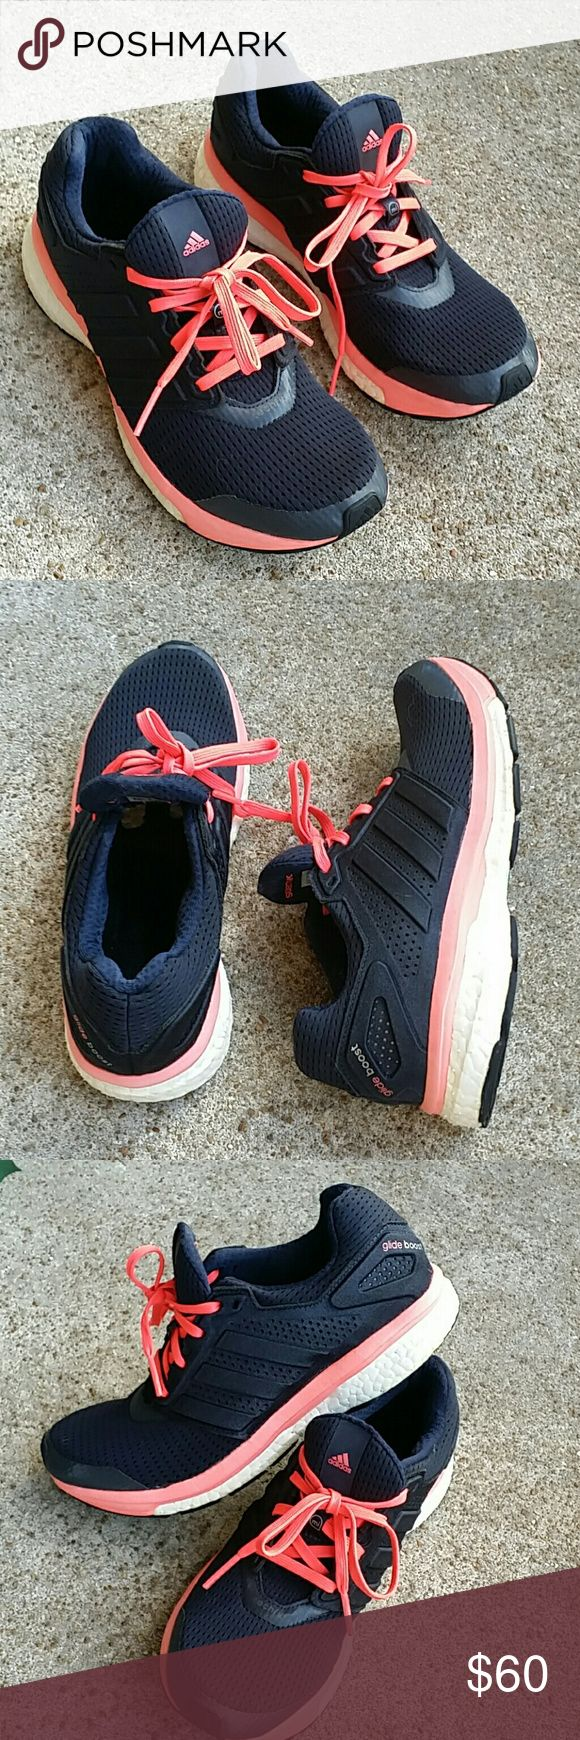 Adidas glide boost Adidas Supernova glide boost.  Navy blue, black, hot pink color. Worn only a couple of times. Gently used. Good condition. adidas Shoes Athletic Shoes